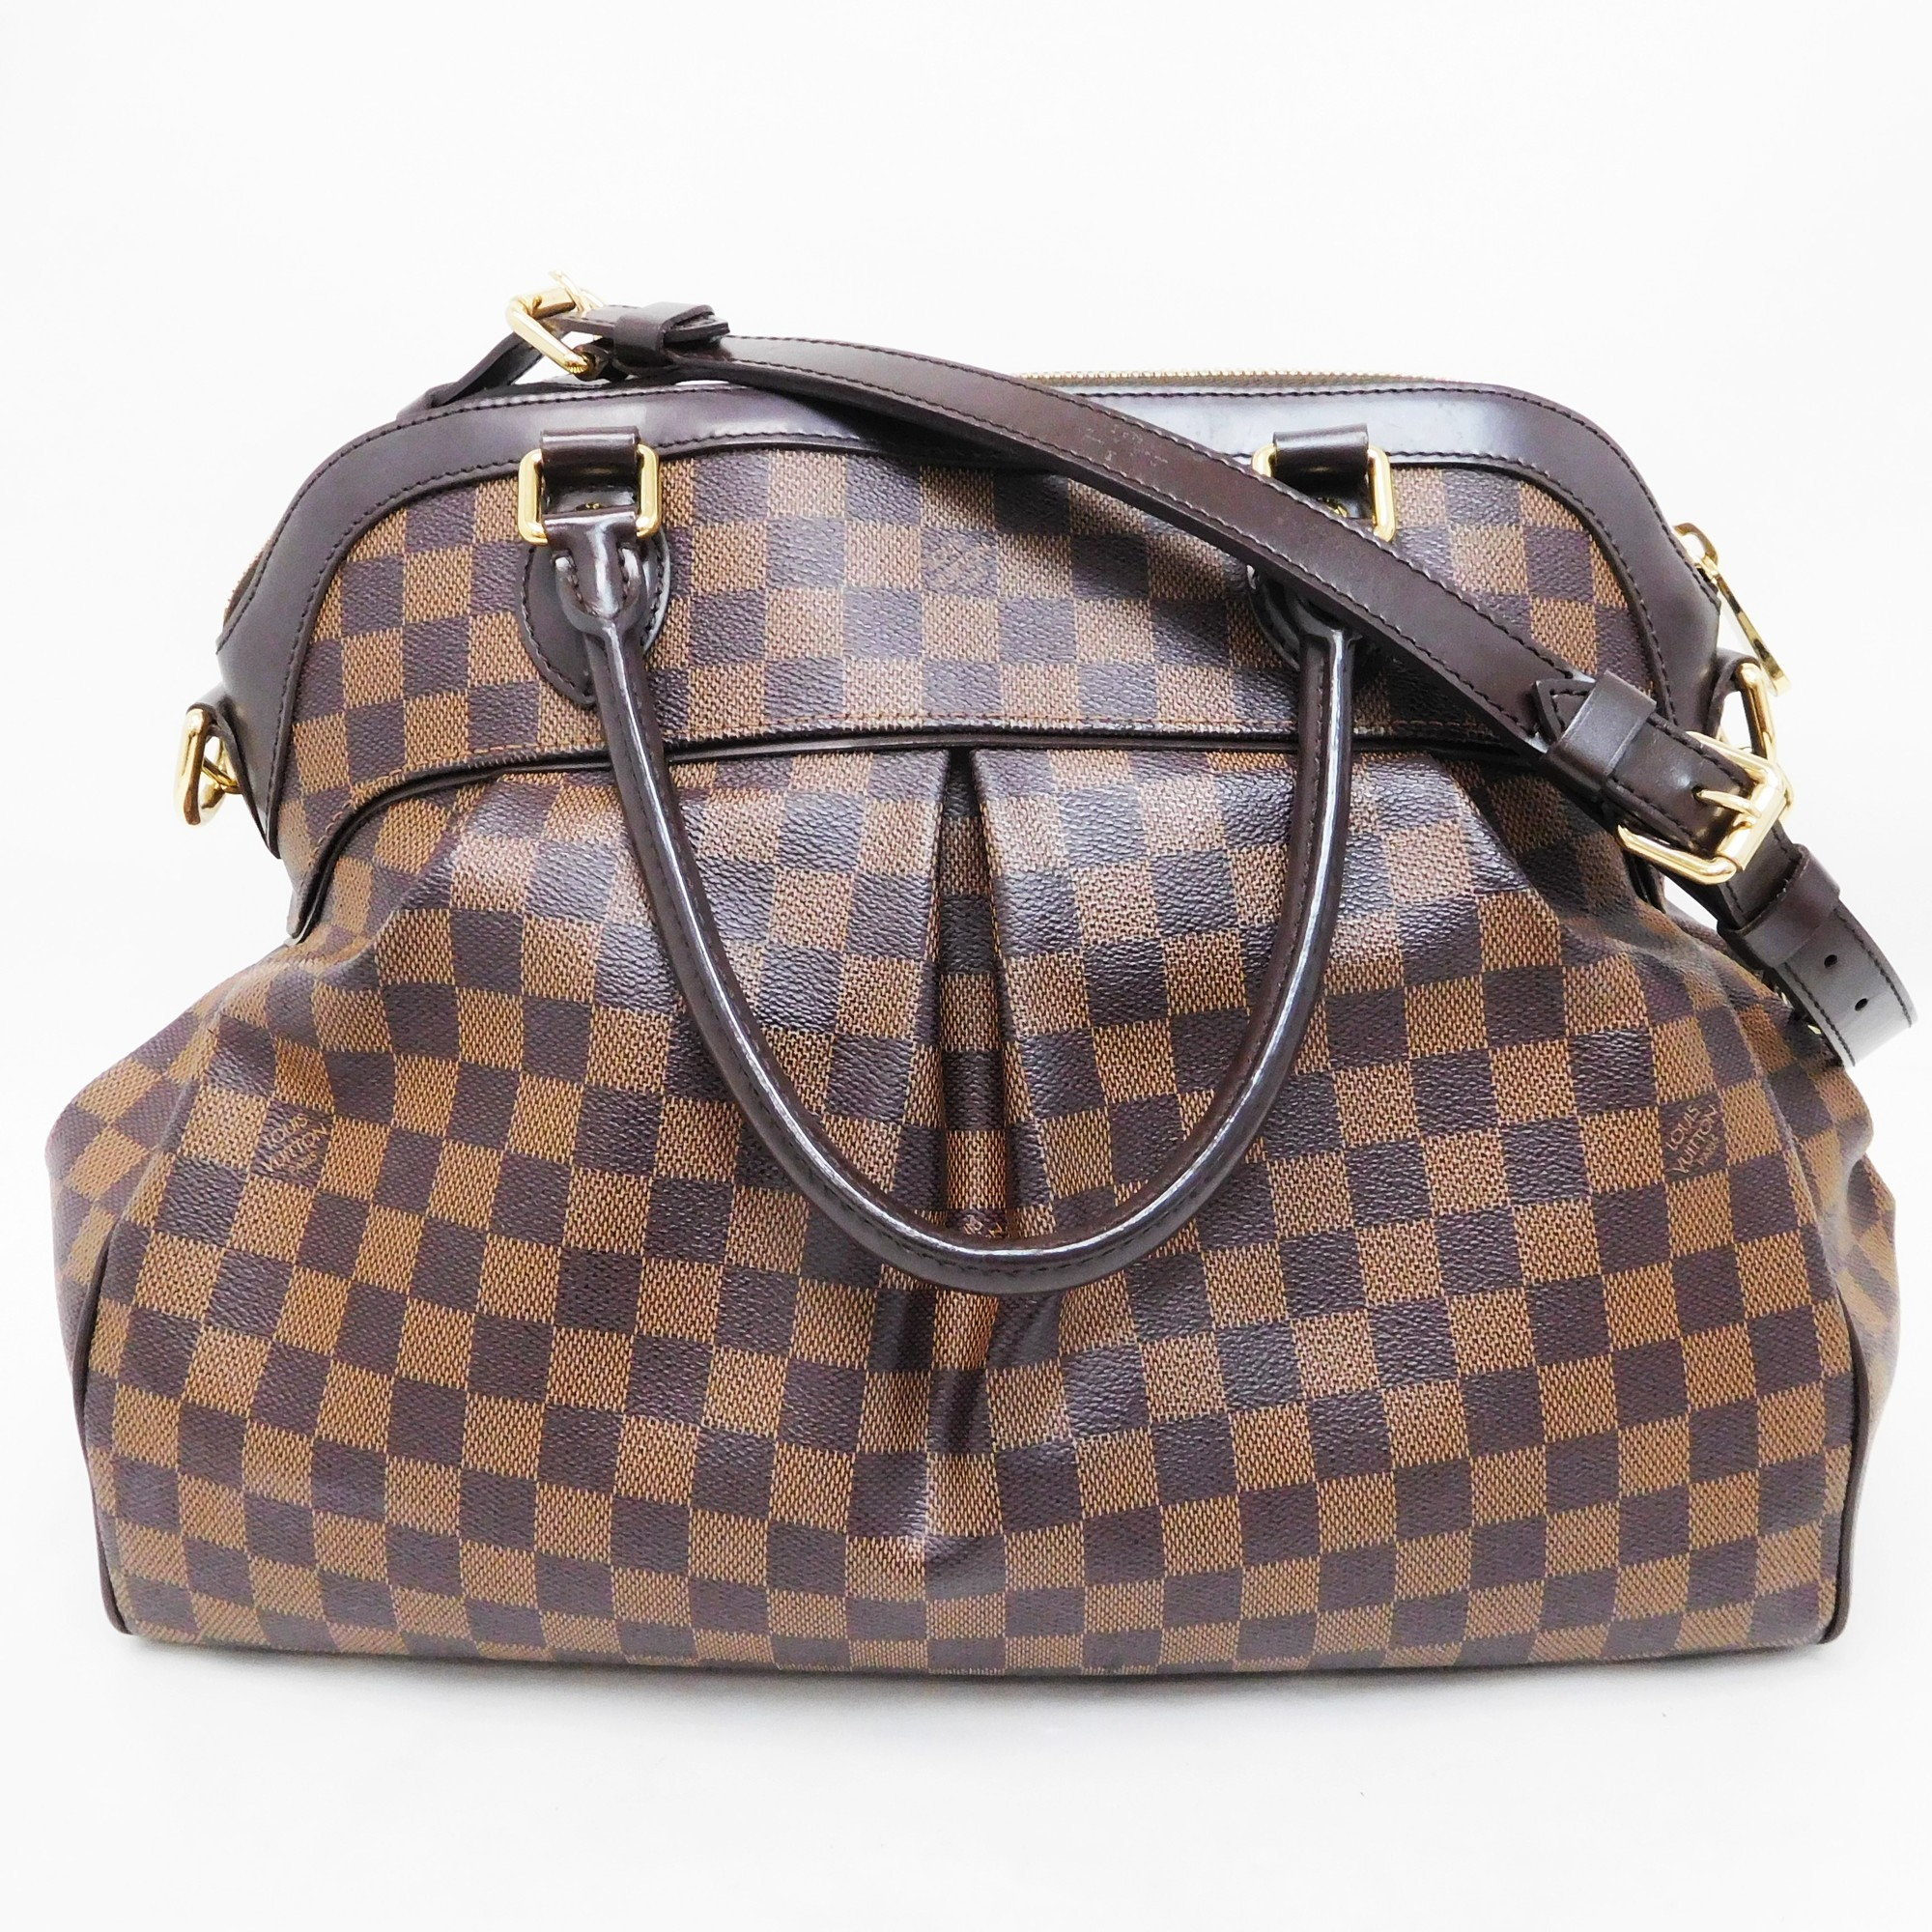 d2d09bfae459 Auth Louis Vuitton Damier Trevi GM N 51998 Handbag Brown